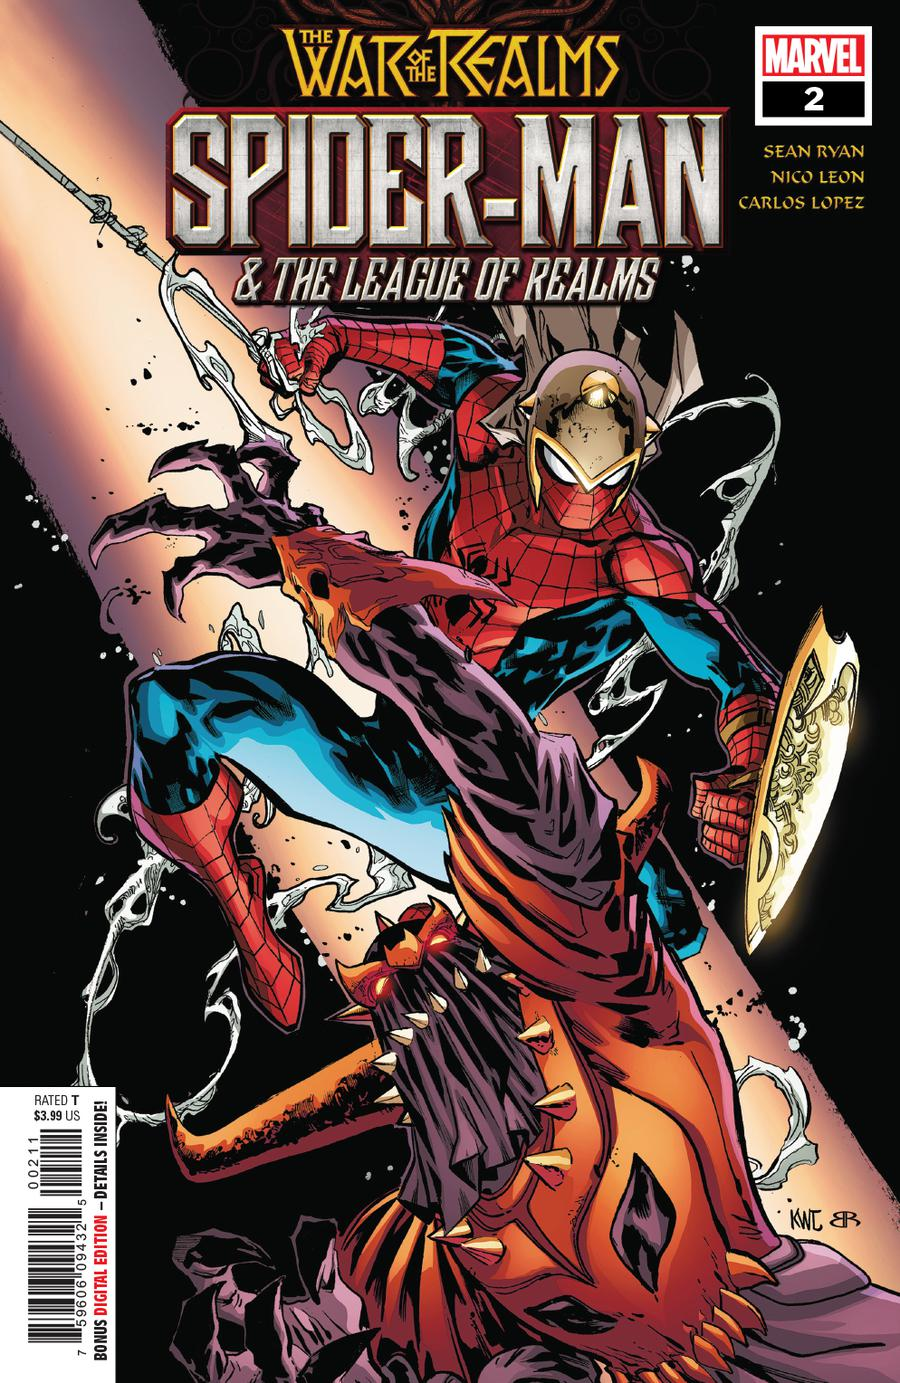 War Of The Realms Spider-Man And The League Of Realms #2 Cover A Regular Ken Lashley Cover